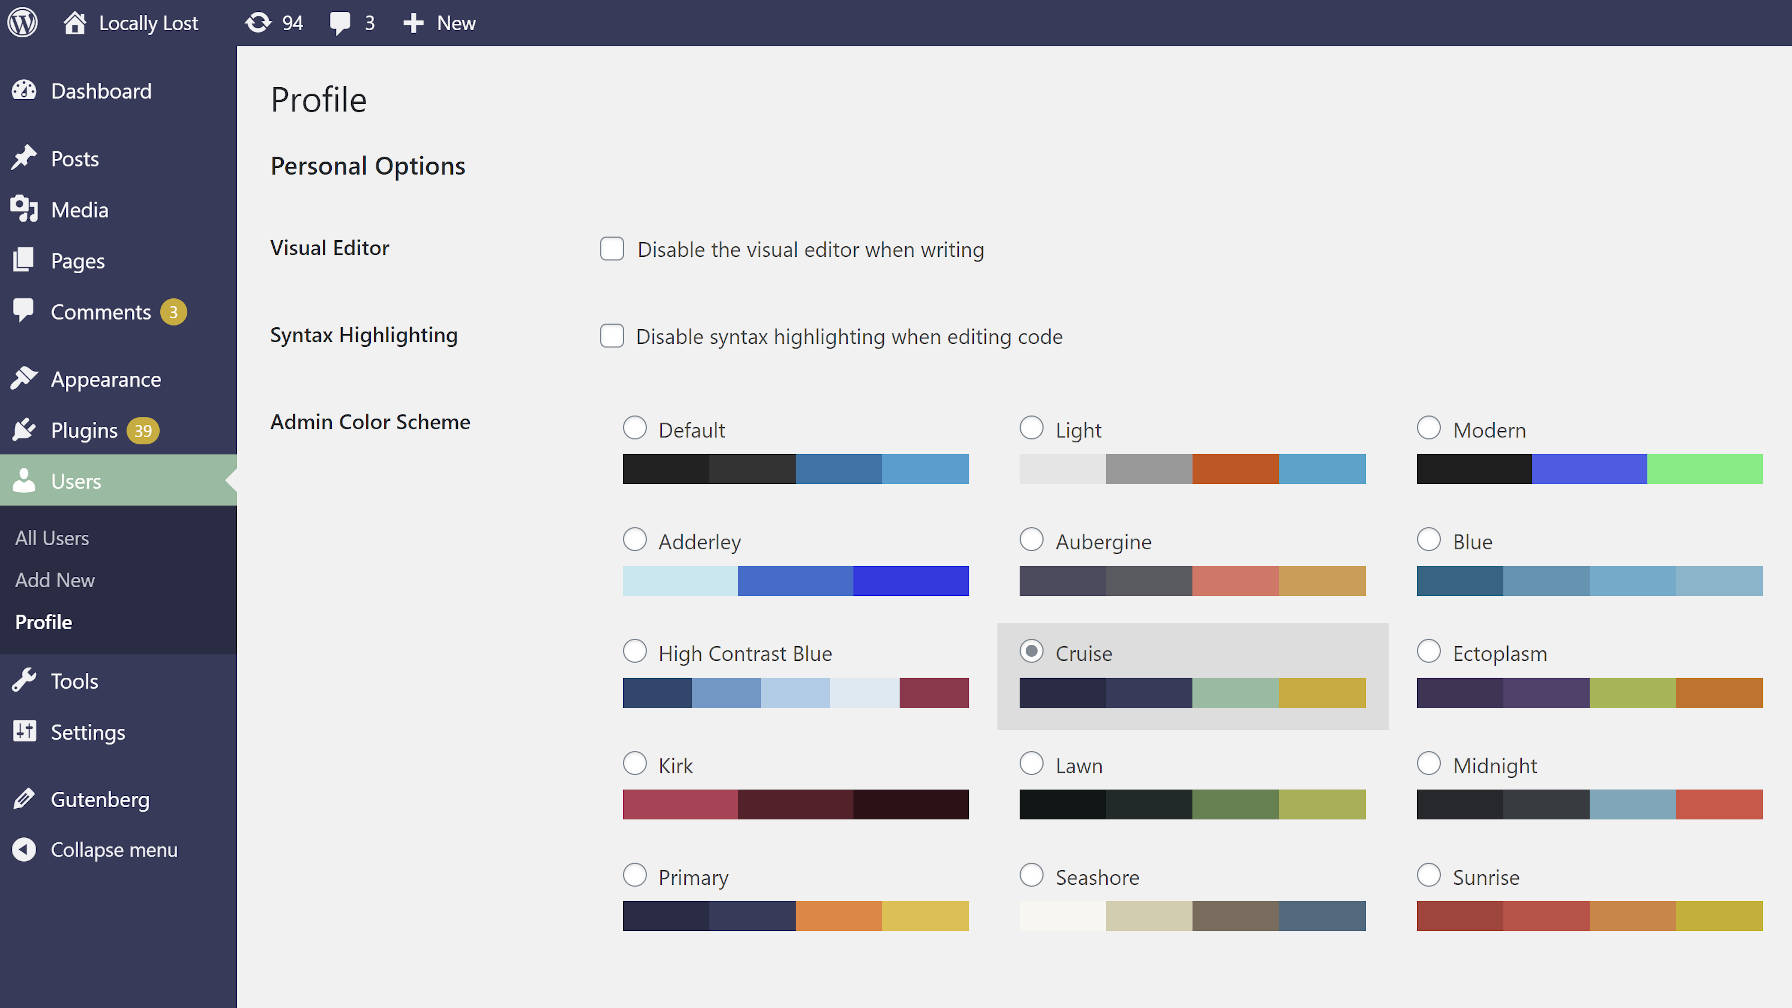 Using the Cruise color scheme from the Admin Color Schemes WordPress plugin.